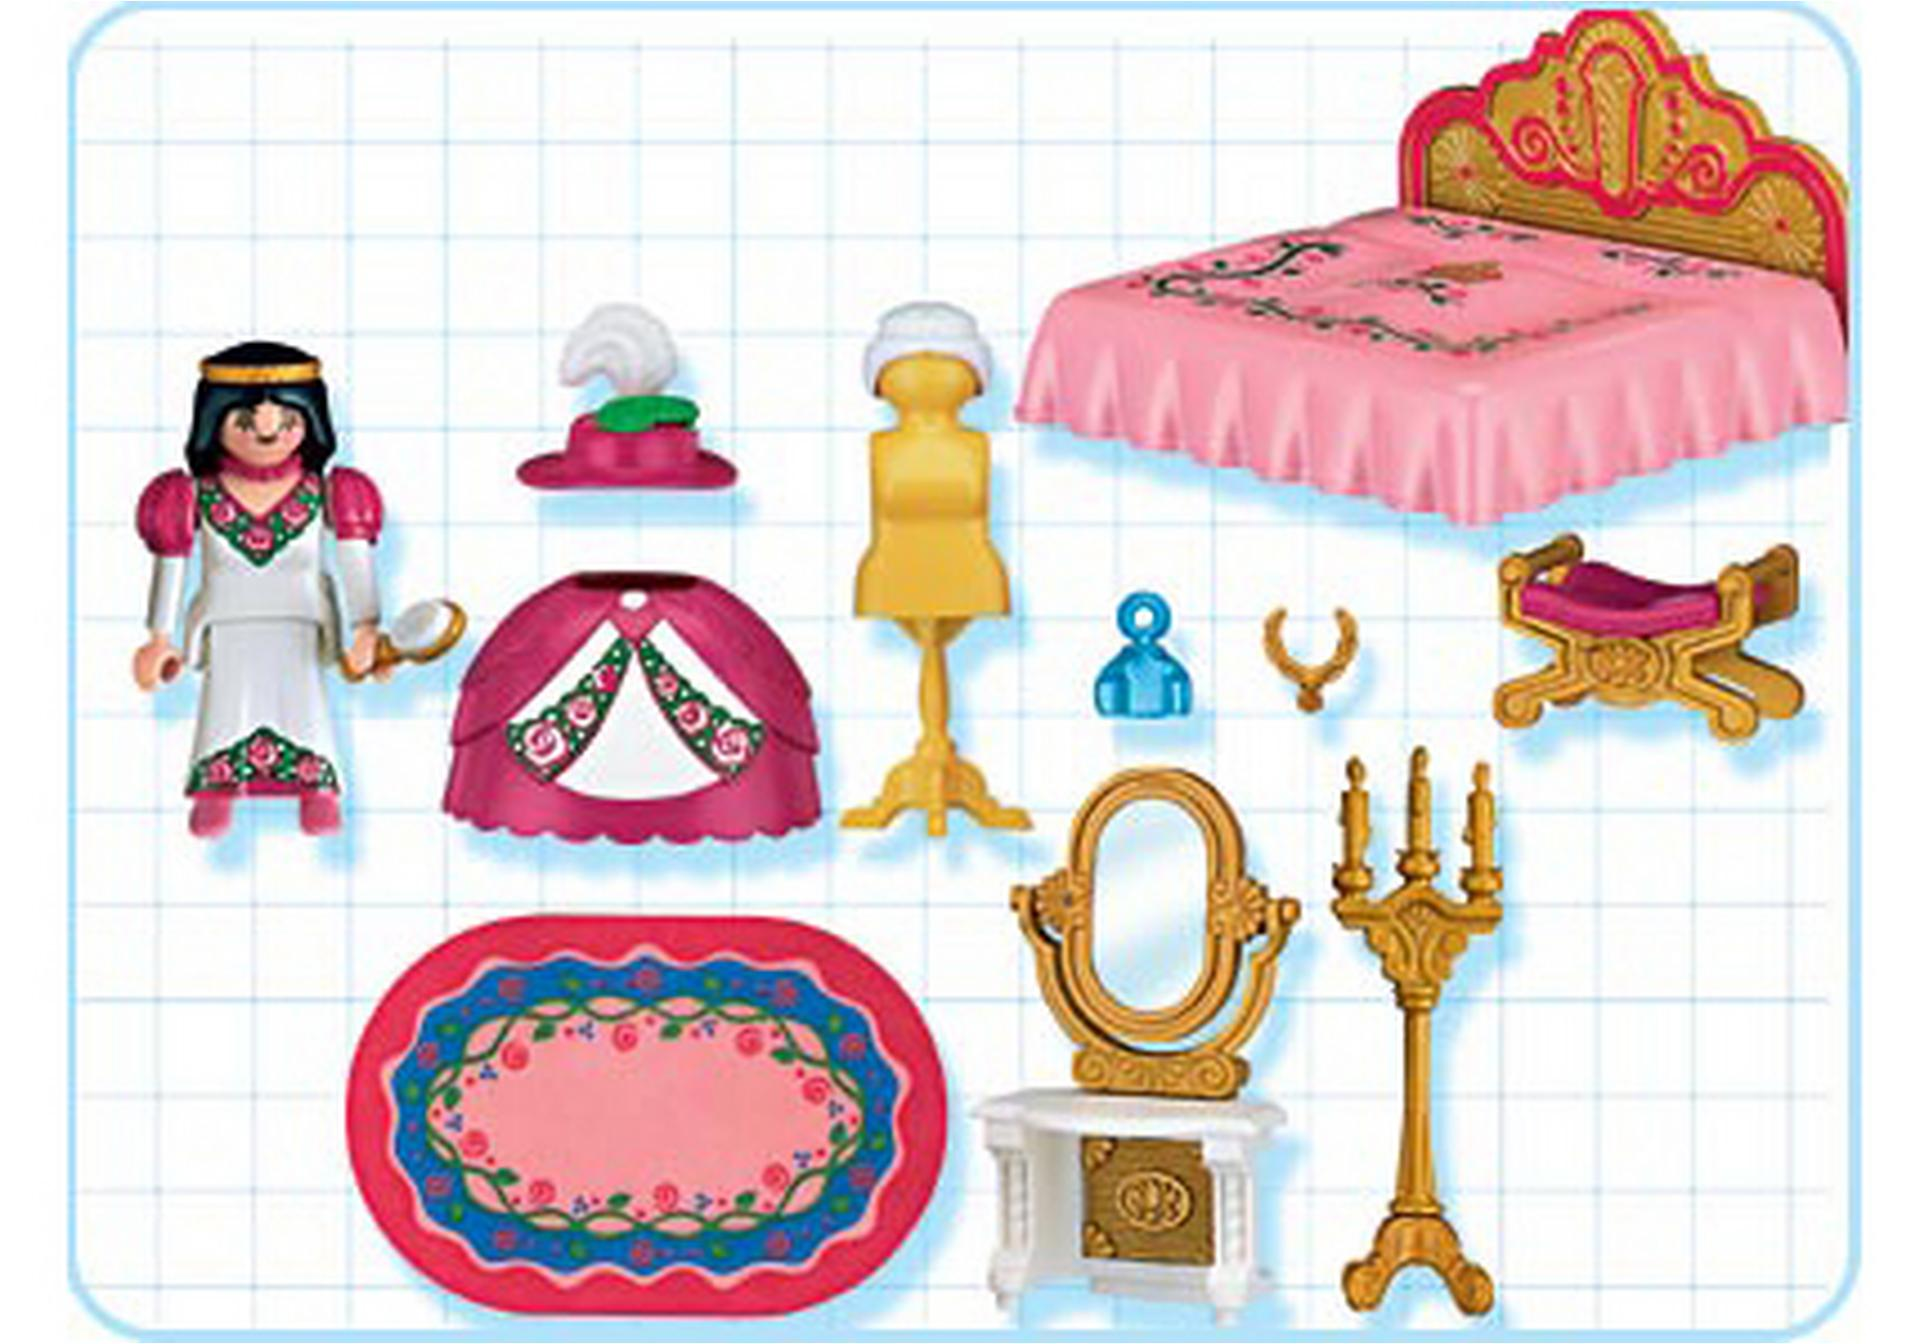 Princesse / chambre - 4253-A - PLAYMOBIL® France